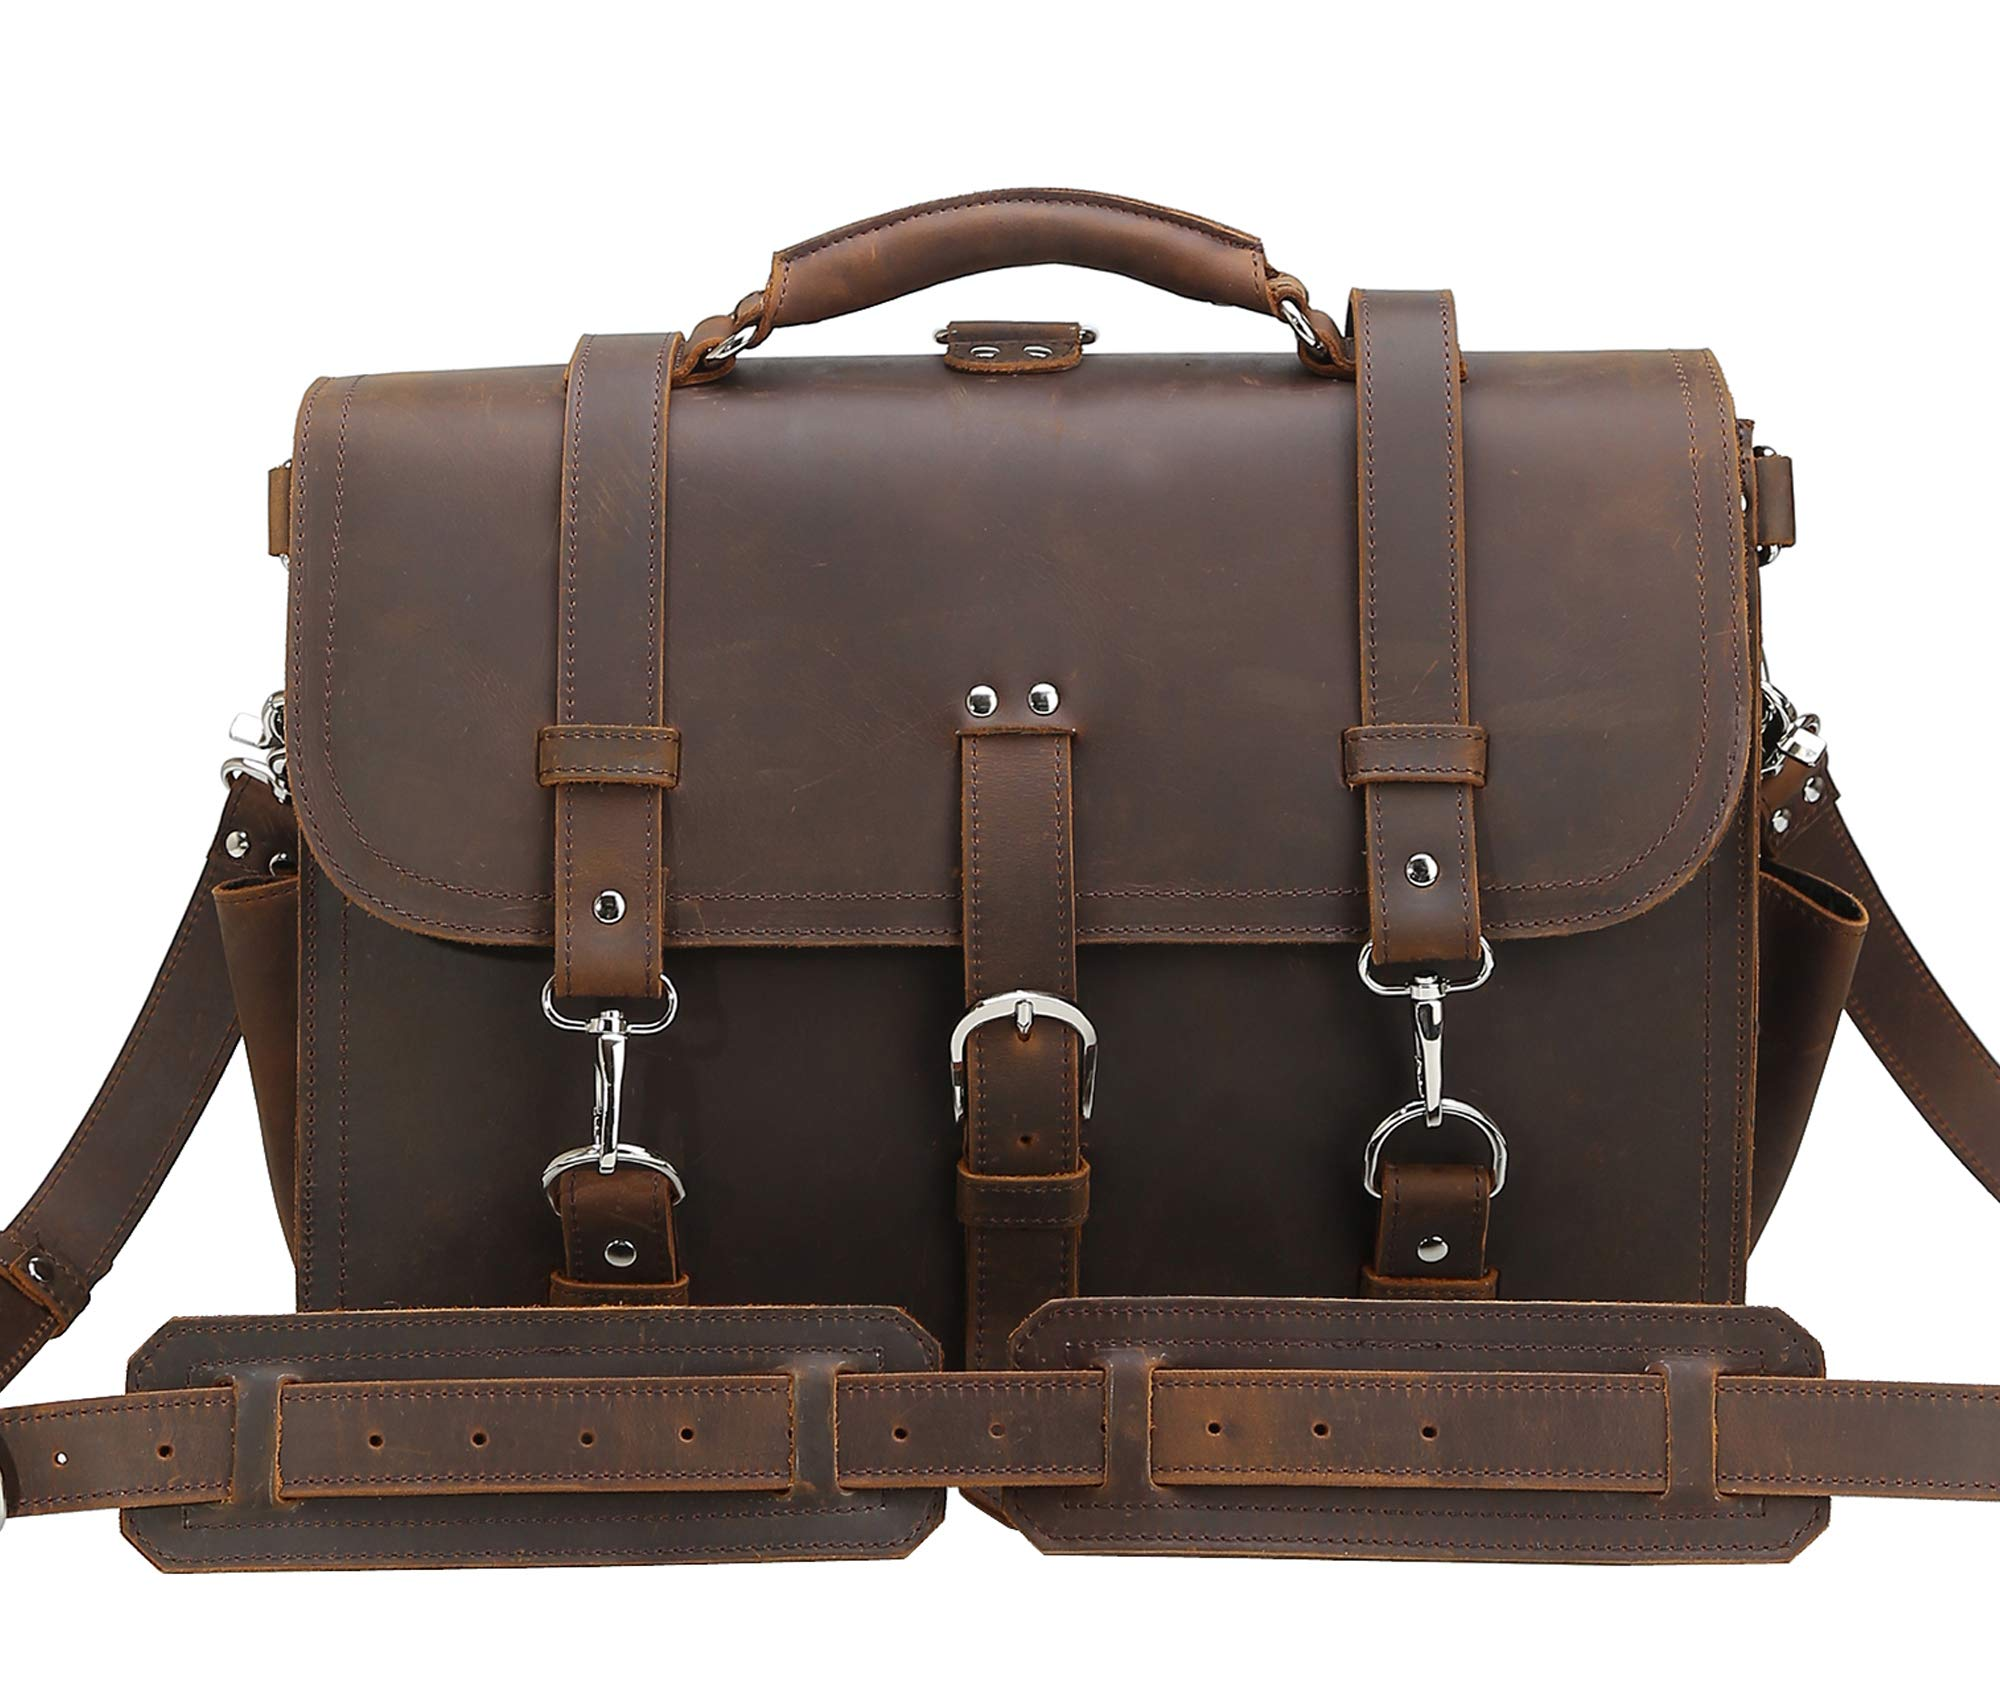 Texbo Men's 16 Inch Thick Cowhide Leather Briefcase Laptop Shoulder Messenger Bag Tote by Texbo (Image #2)